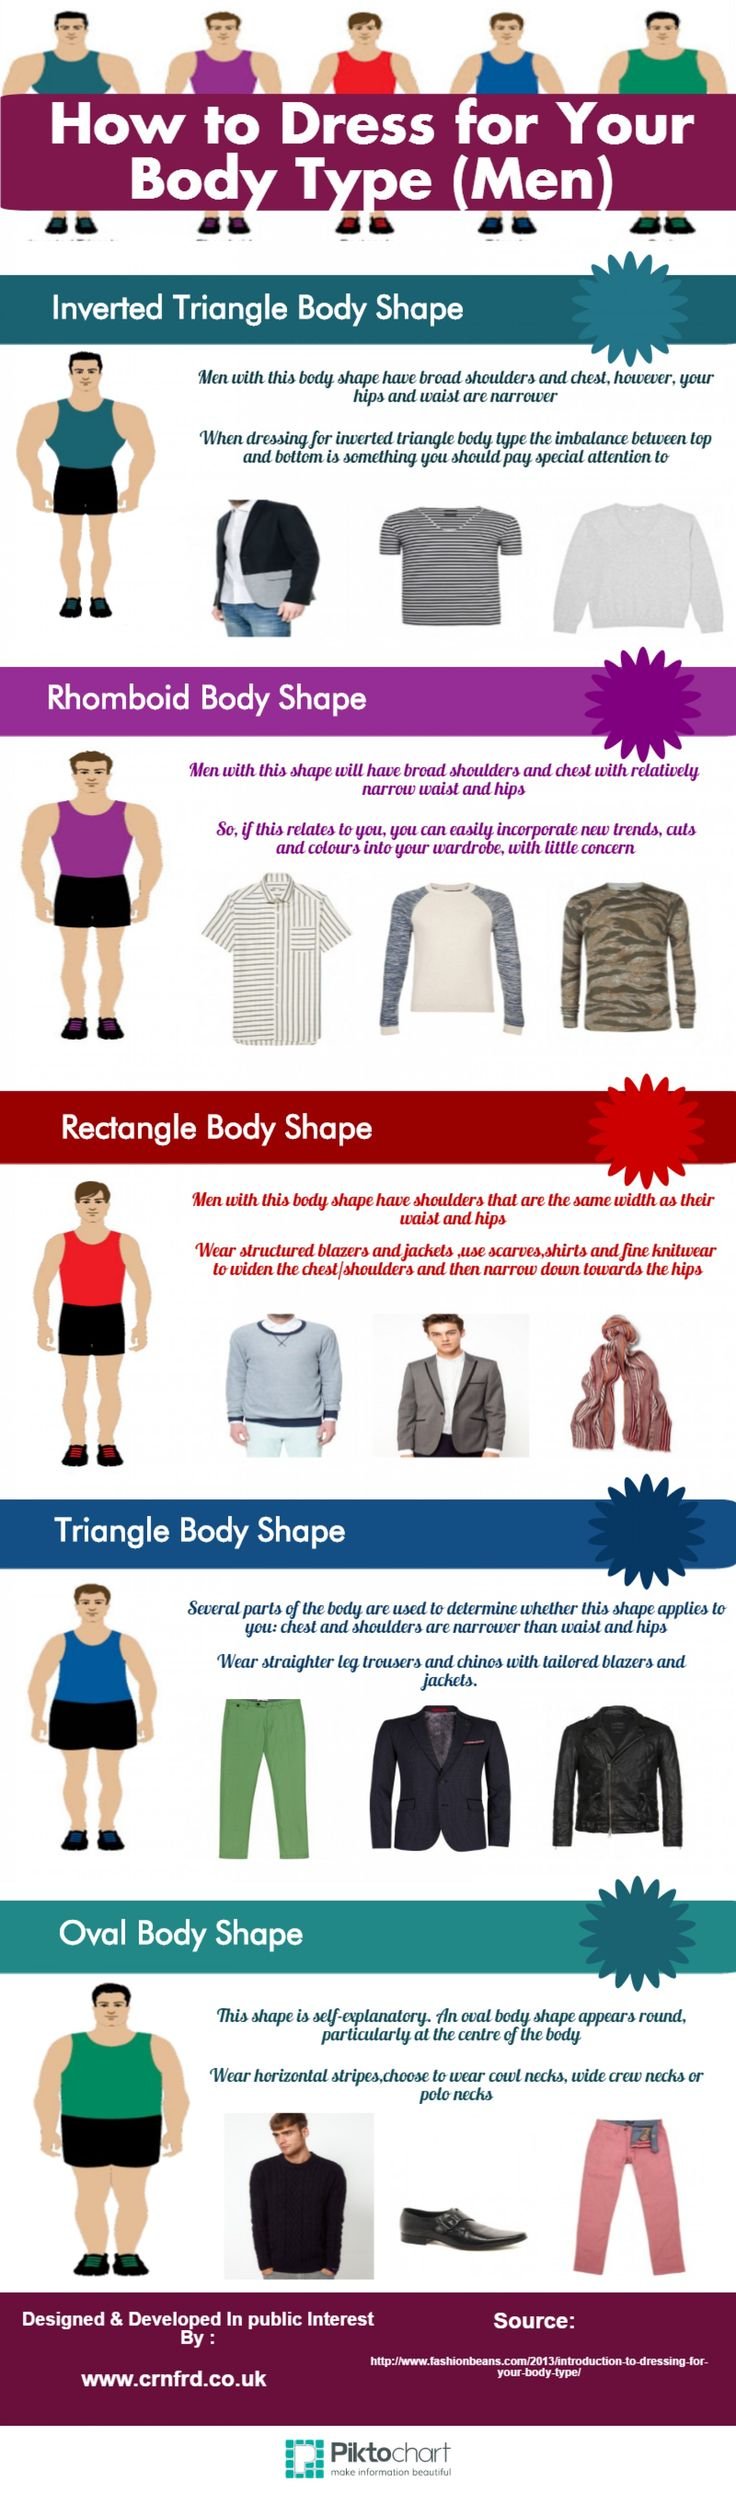 Races zozo body types chart bodycon on male different dress brand primark